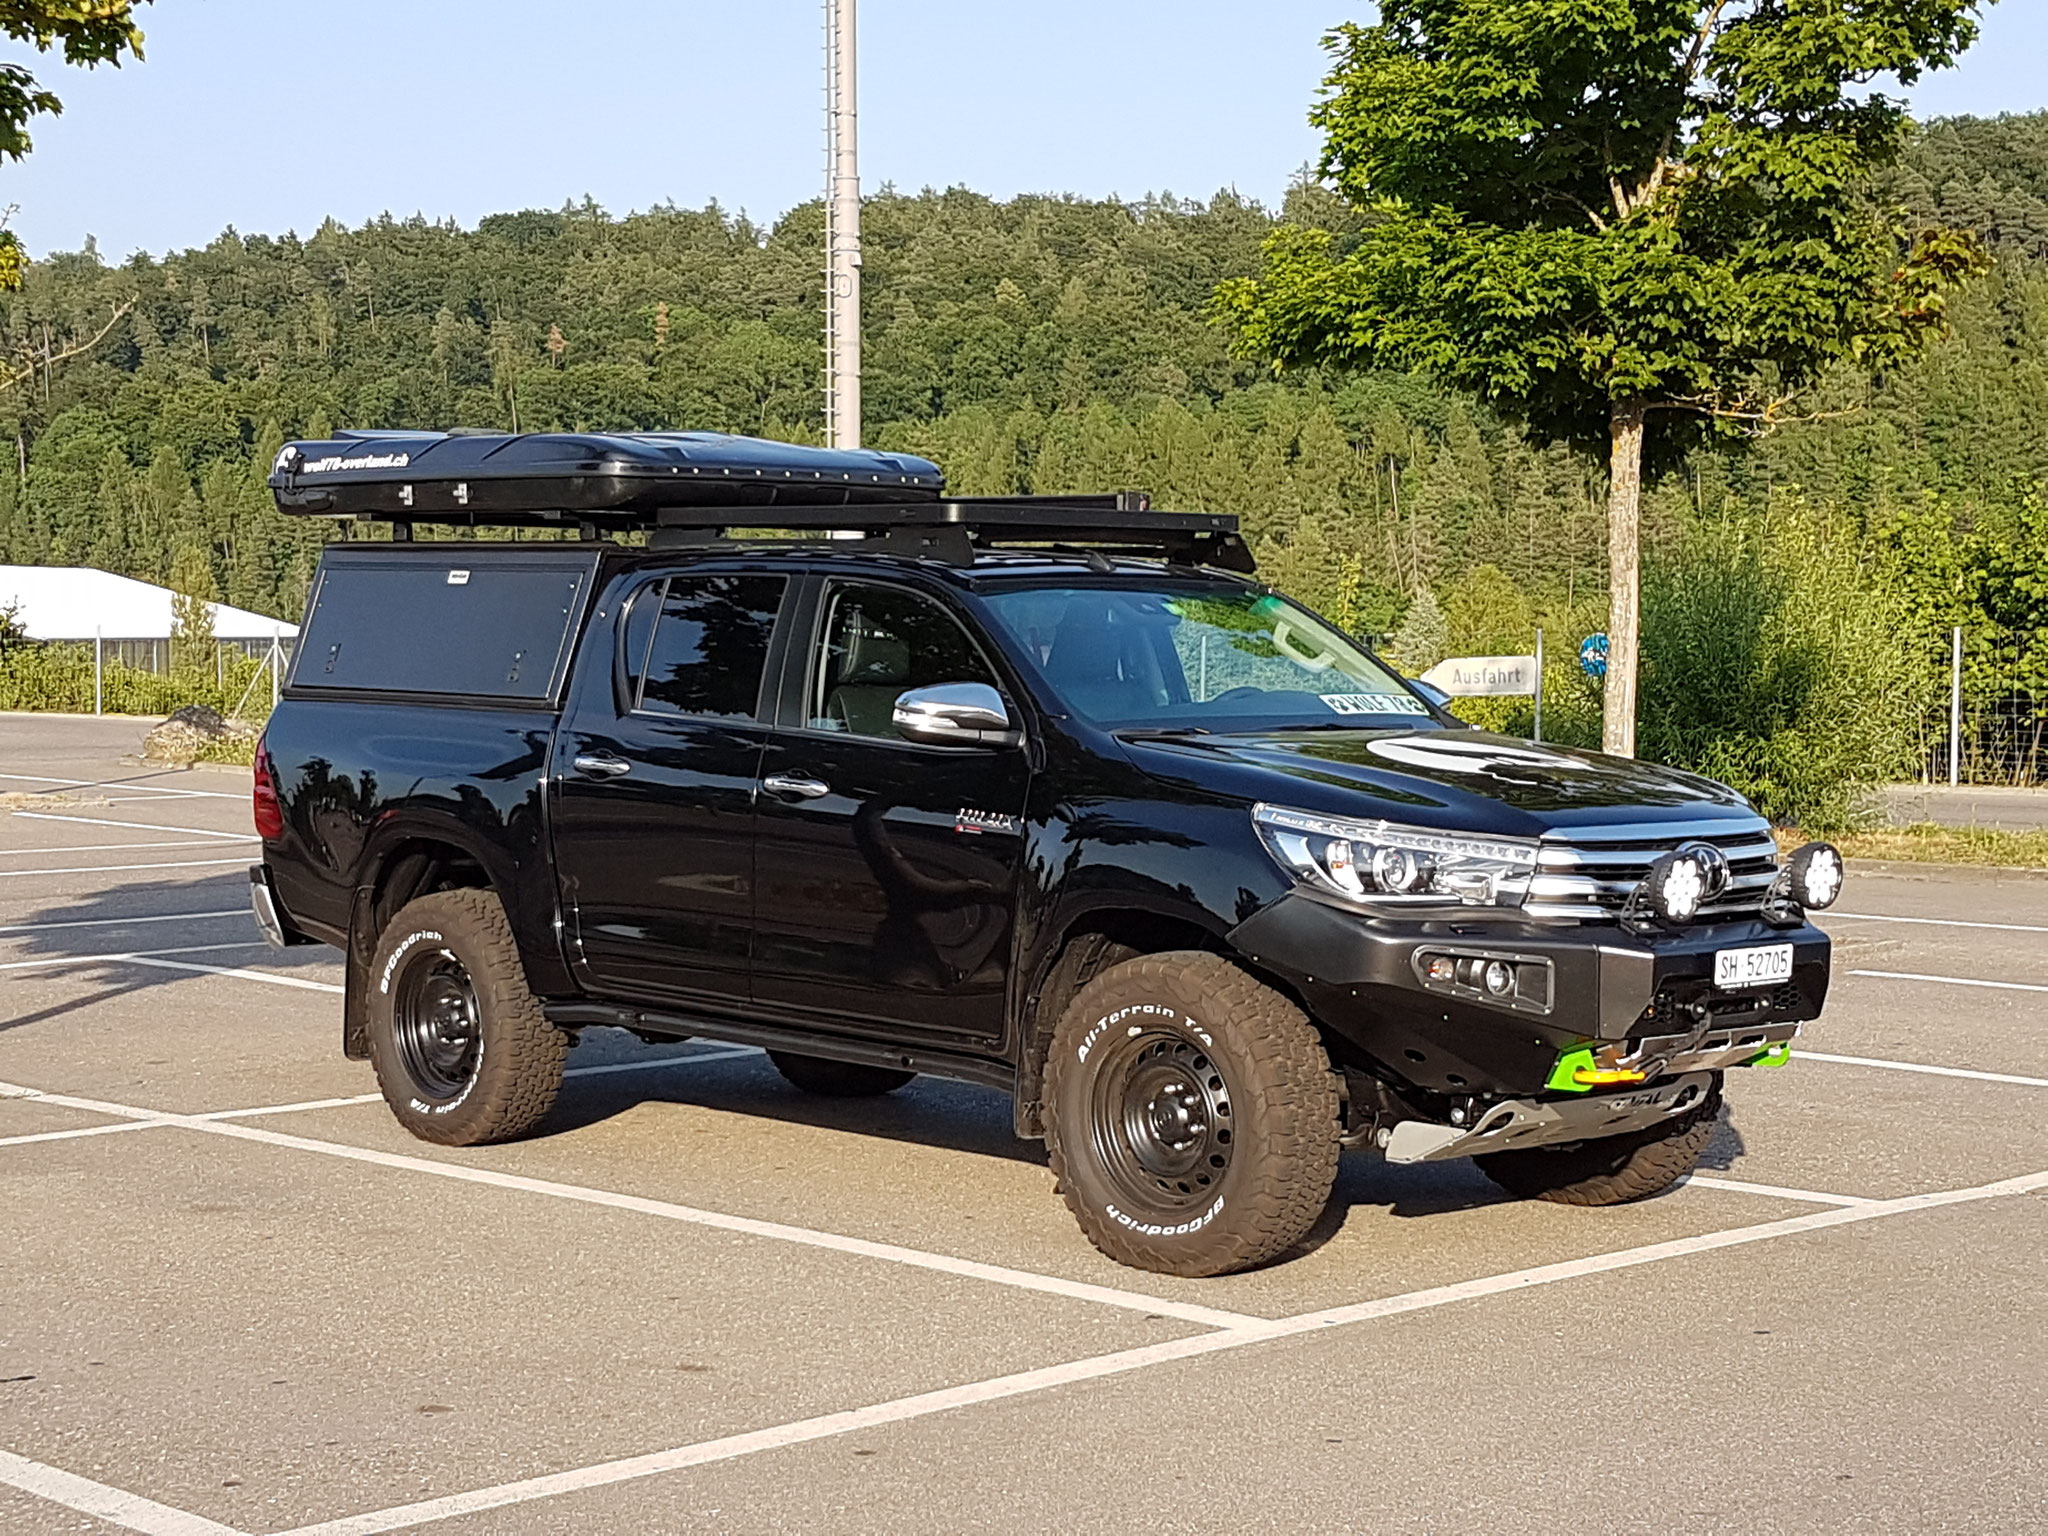 Toyota Hillux 2016 2017 2.4 Revo Blackwolf wolf78-overland.ch offroad 4x4 AFN Frontbumper Frontrunner Horntools Rival James Baroude BF-Goodrich storm72.ch wolf78 Camper TJM ARB Alucab